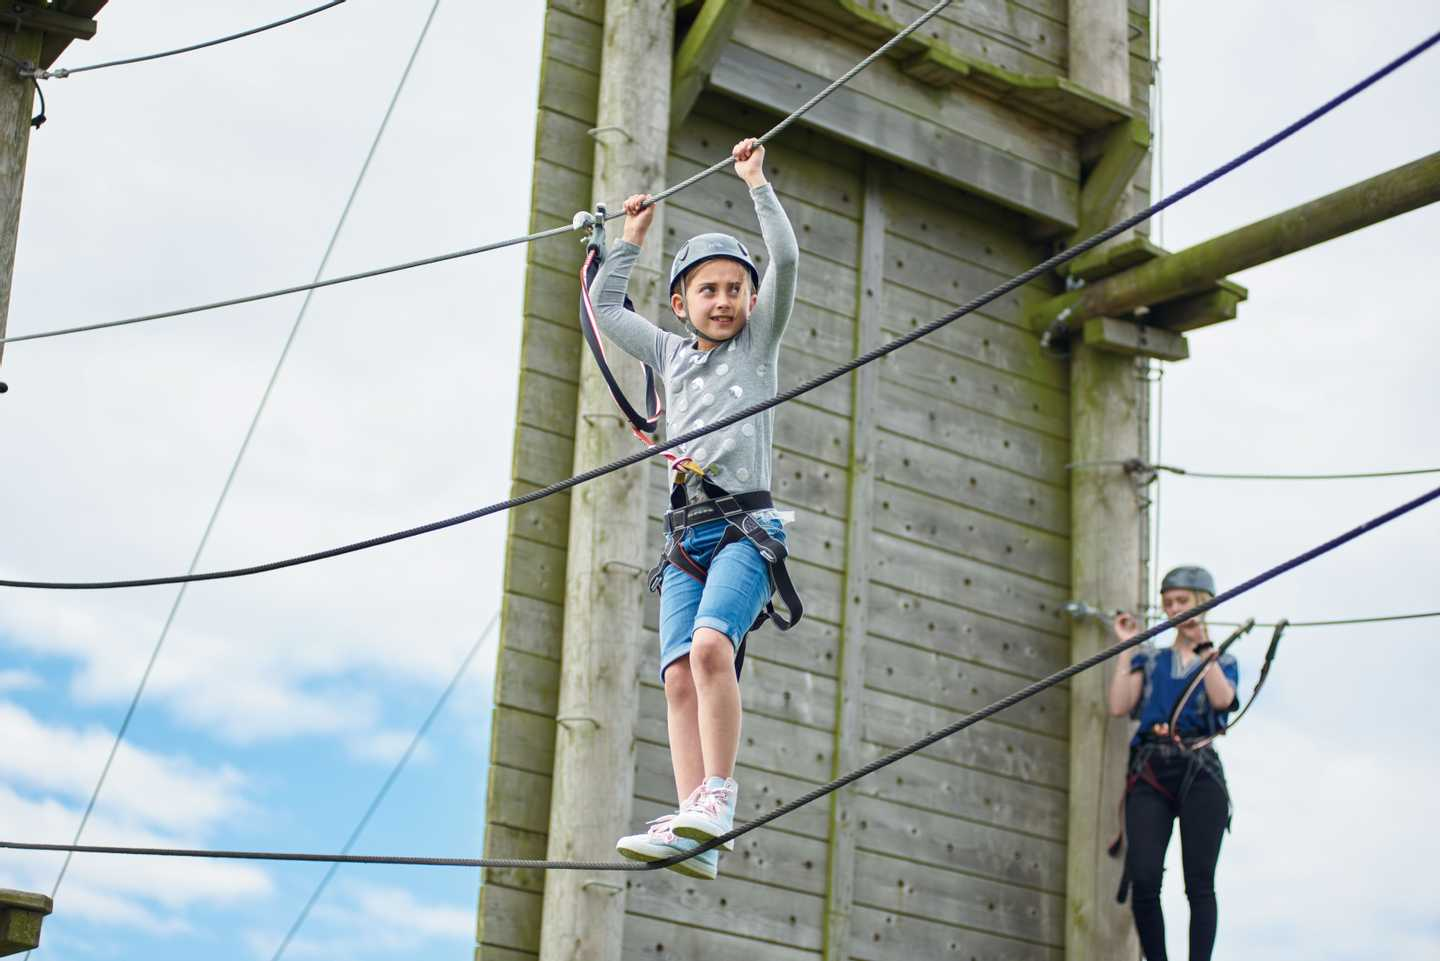 Child attempting the ropes course